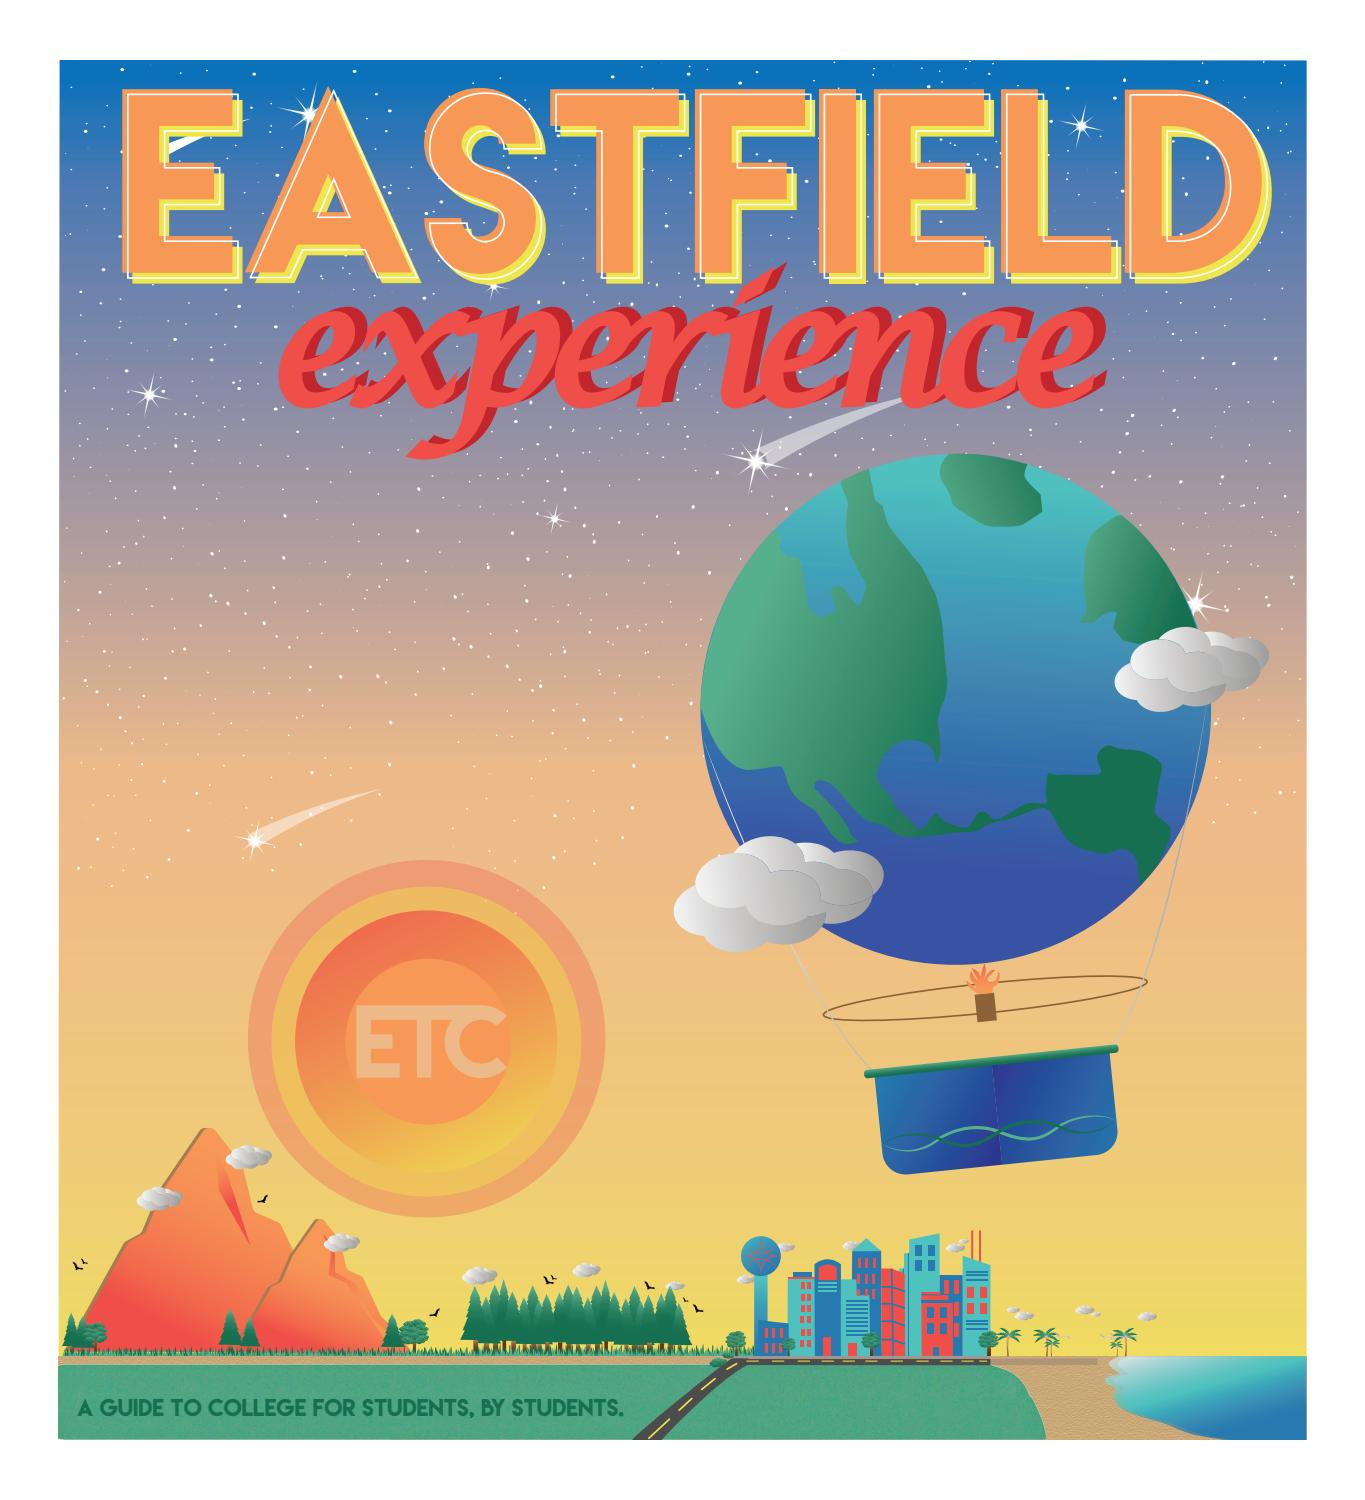 Eastfield Experience student guide 2018-19 by The Et Cetera